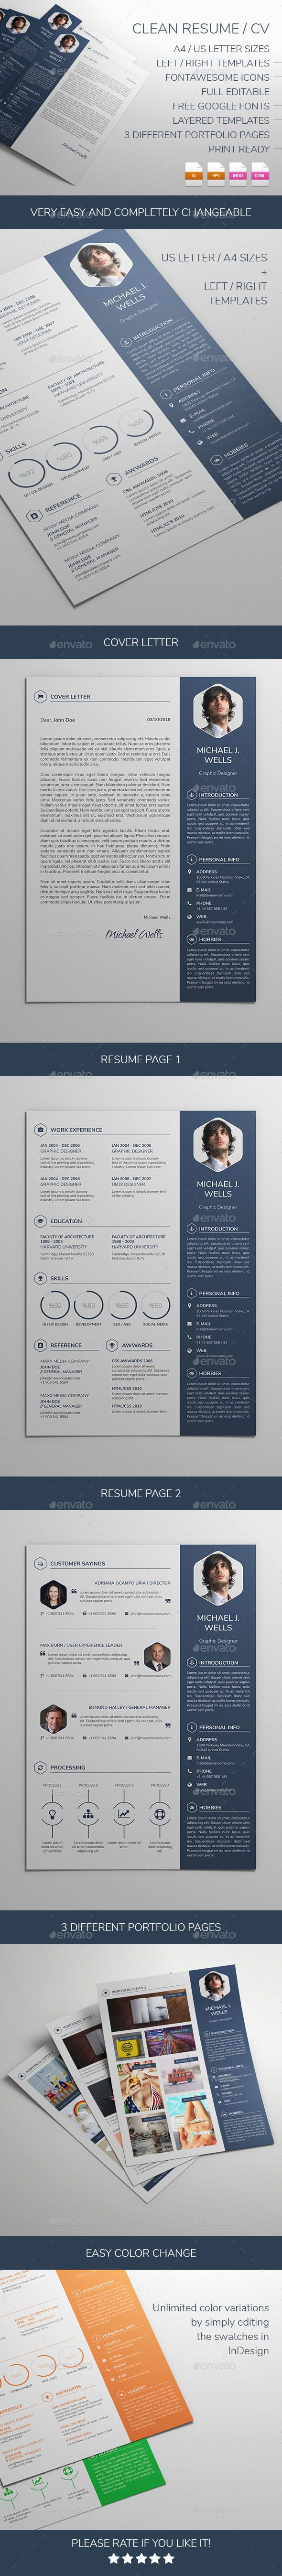 Amazing 1 Year Experience Resume In Java J2ee Thin 10 Best Resume Samples Flat 10 Tips For Writing A Good Resume 10 Window Envelope Template Young 100 Dollar Bill Template Blue2 Page Resume Layout 497 Best Images About Resume On Pinterest | Resume Template ..